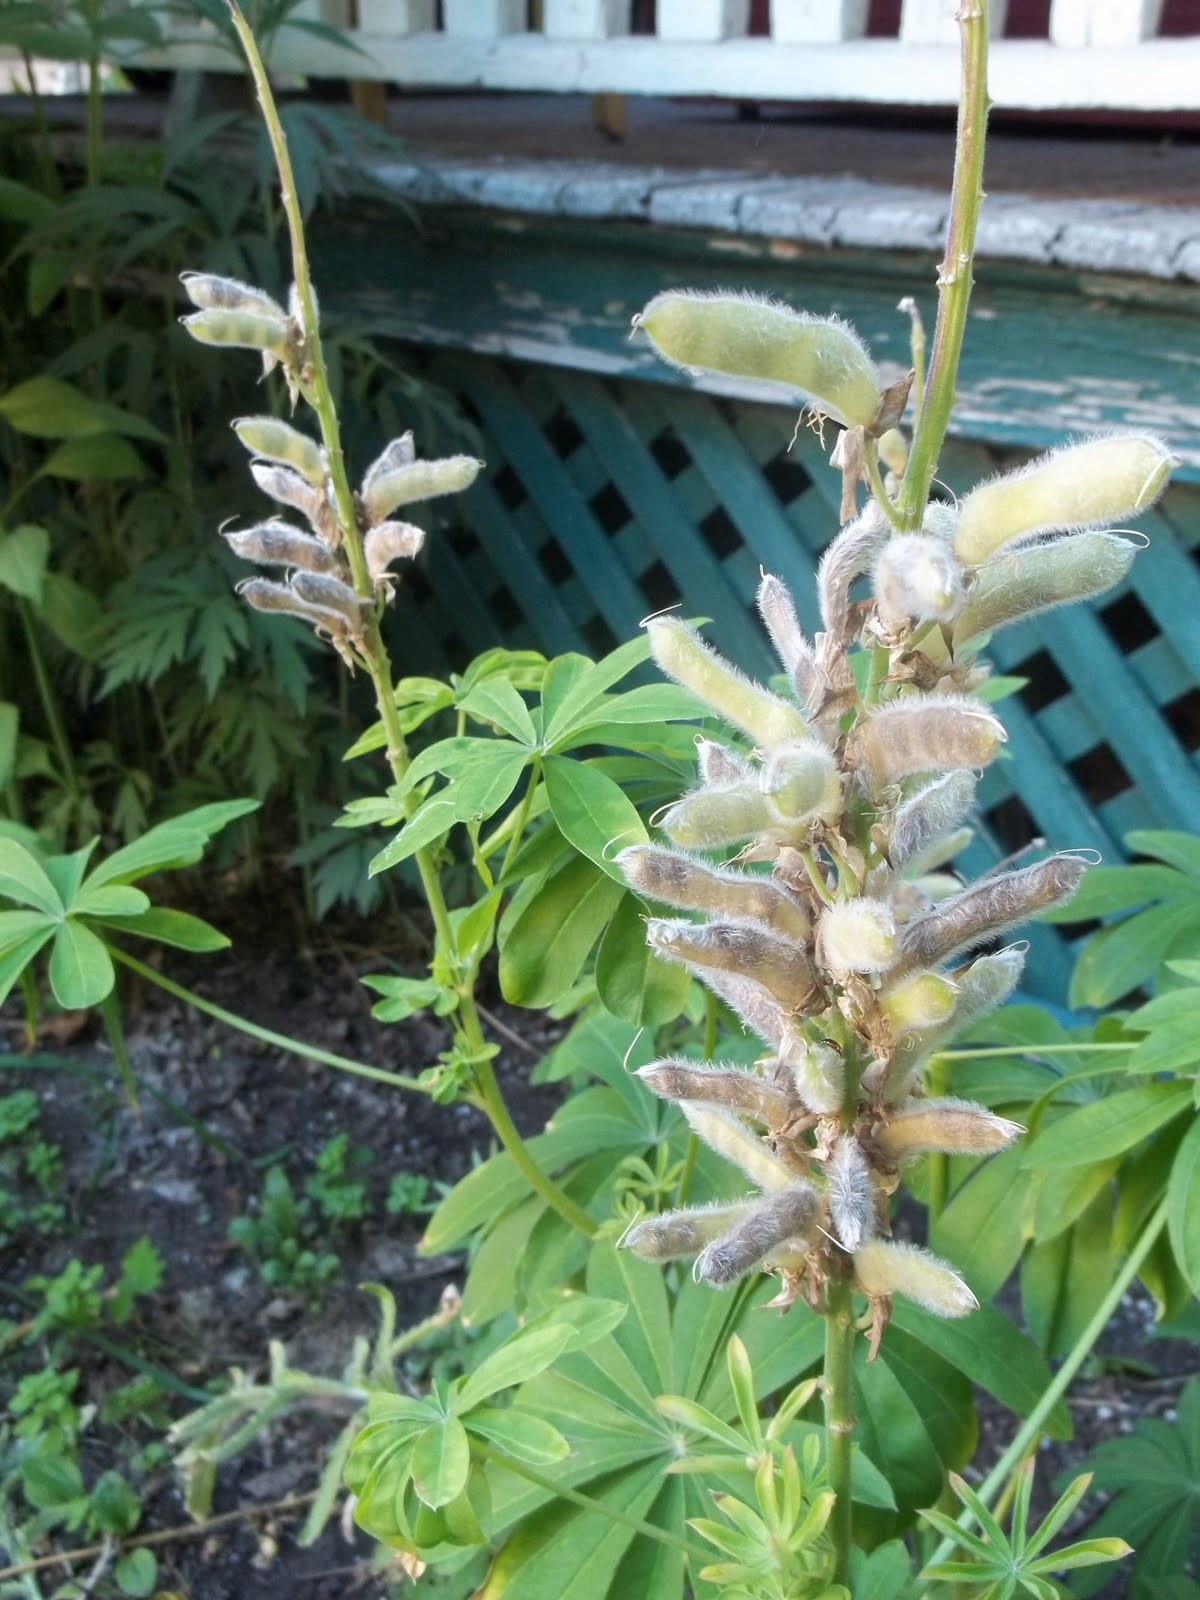 How to plant lupine seeds - If You Look Closely You Can See The Dark Brown Seeds In The Pods